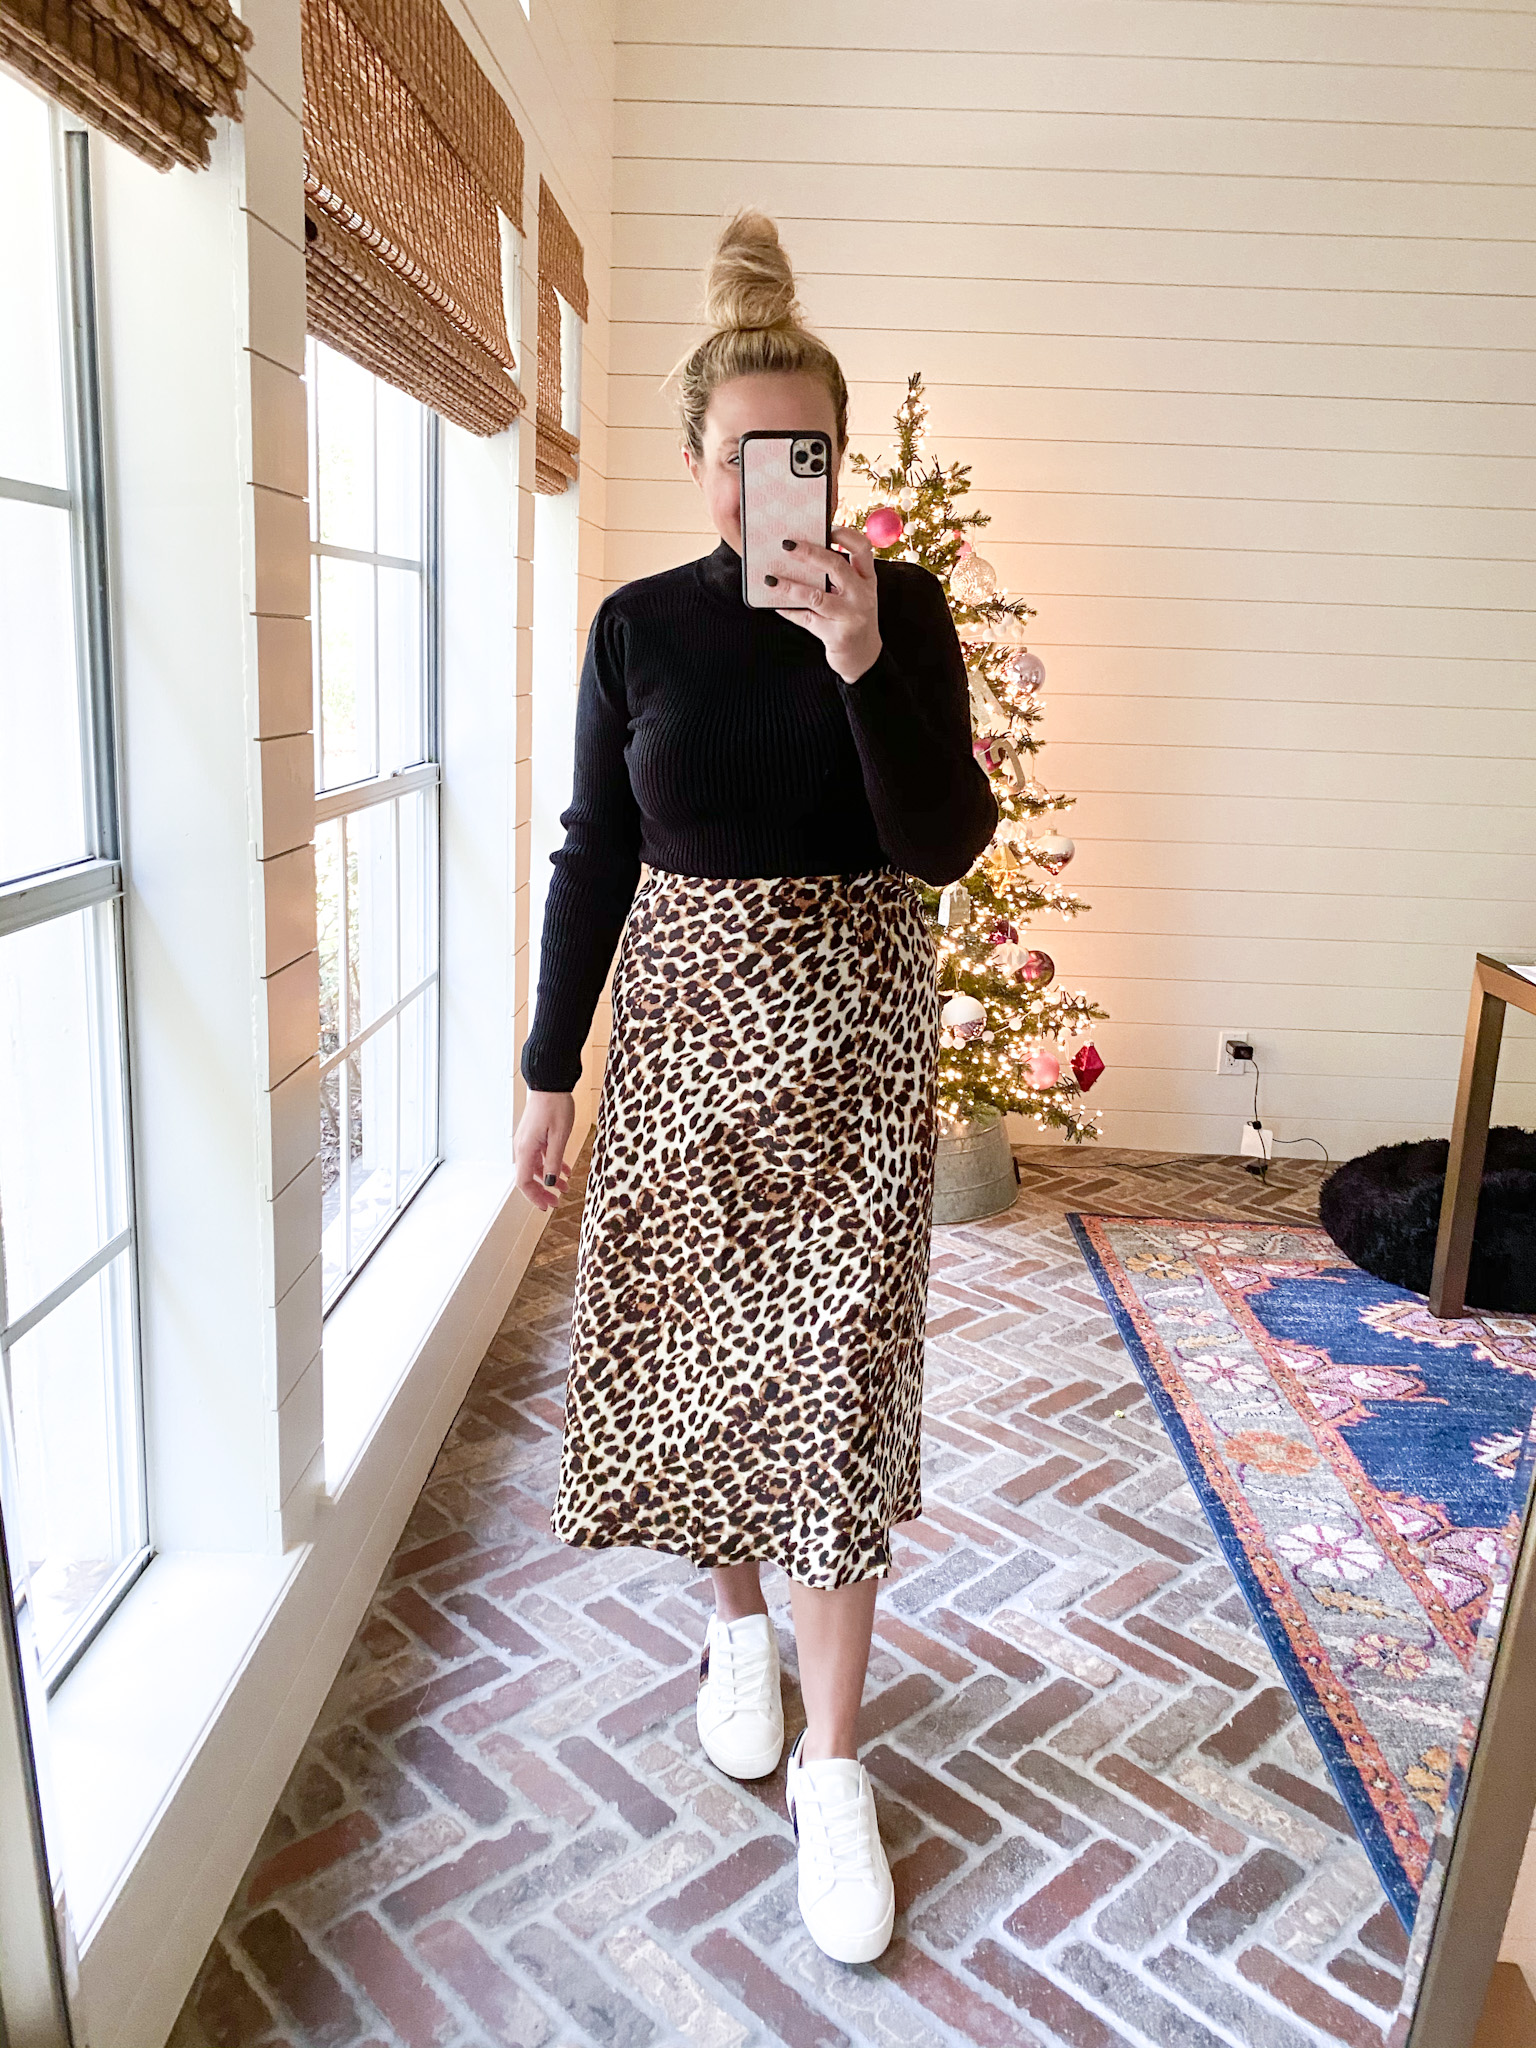 Walmart Womens Clothes by popular Houston fashion blog, Fancy Ashley: image of a woman wearing a Walmart Scoop Women's Mock Neck Top with Ruched Sleeves, Walmart Scoop Women's Printed Midi Slip Skirt and Walmart white sneakers.